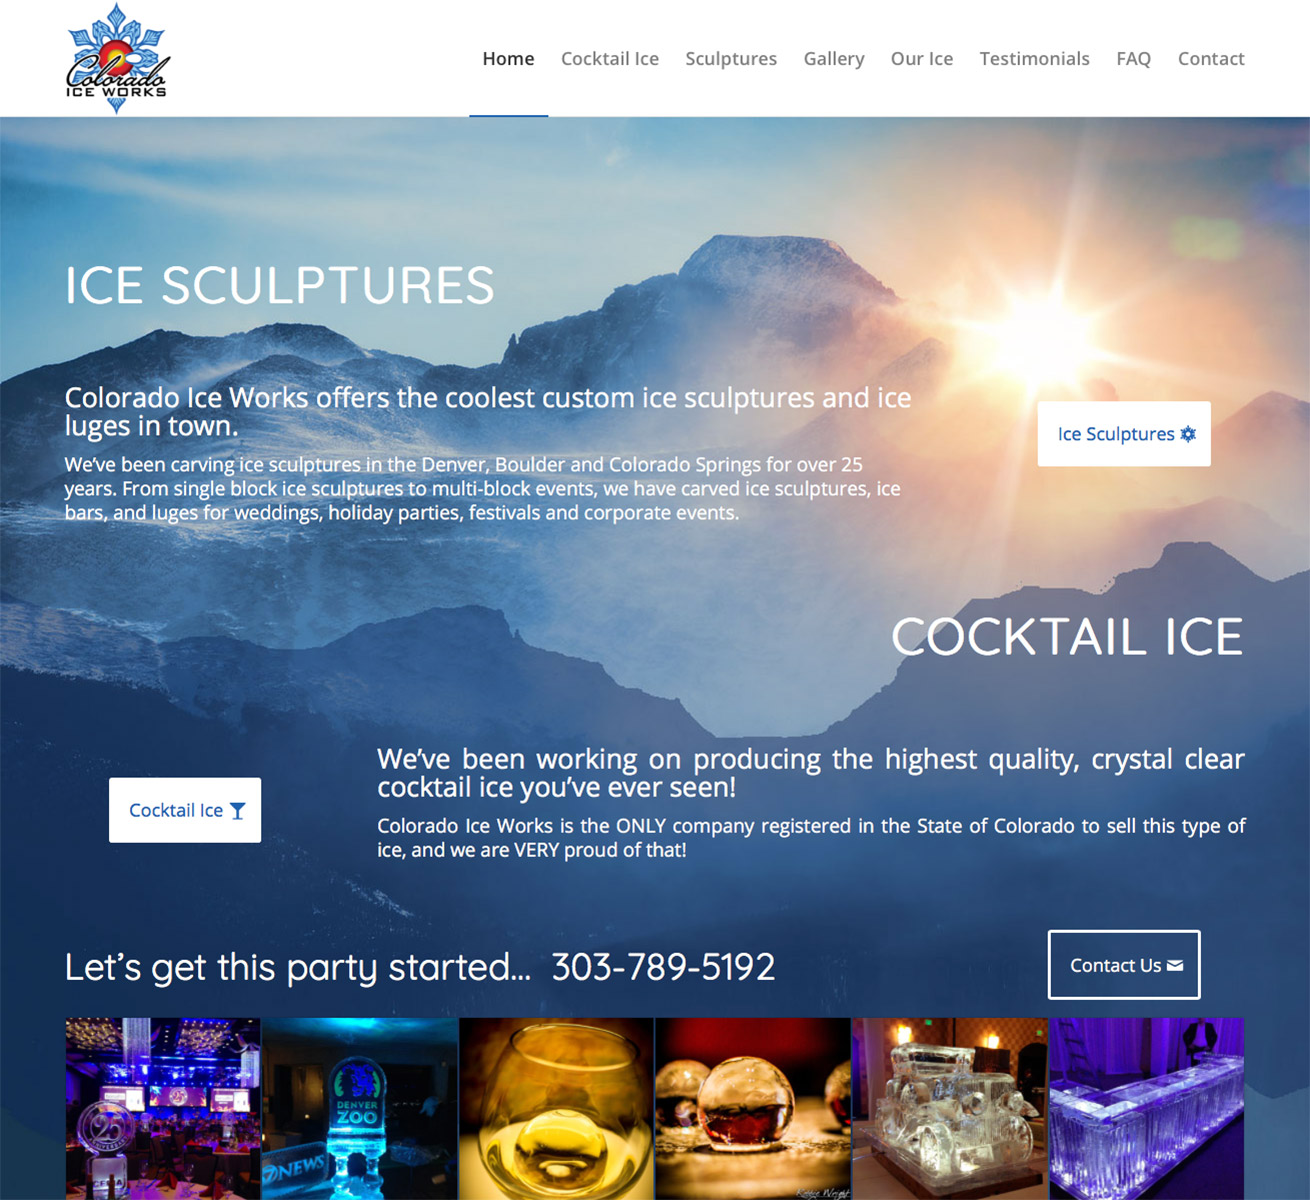 Colorado Ice Works website design